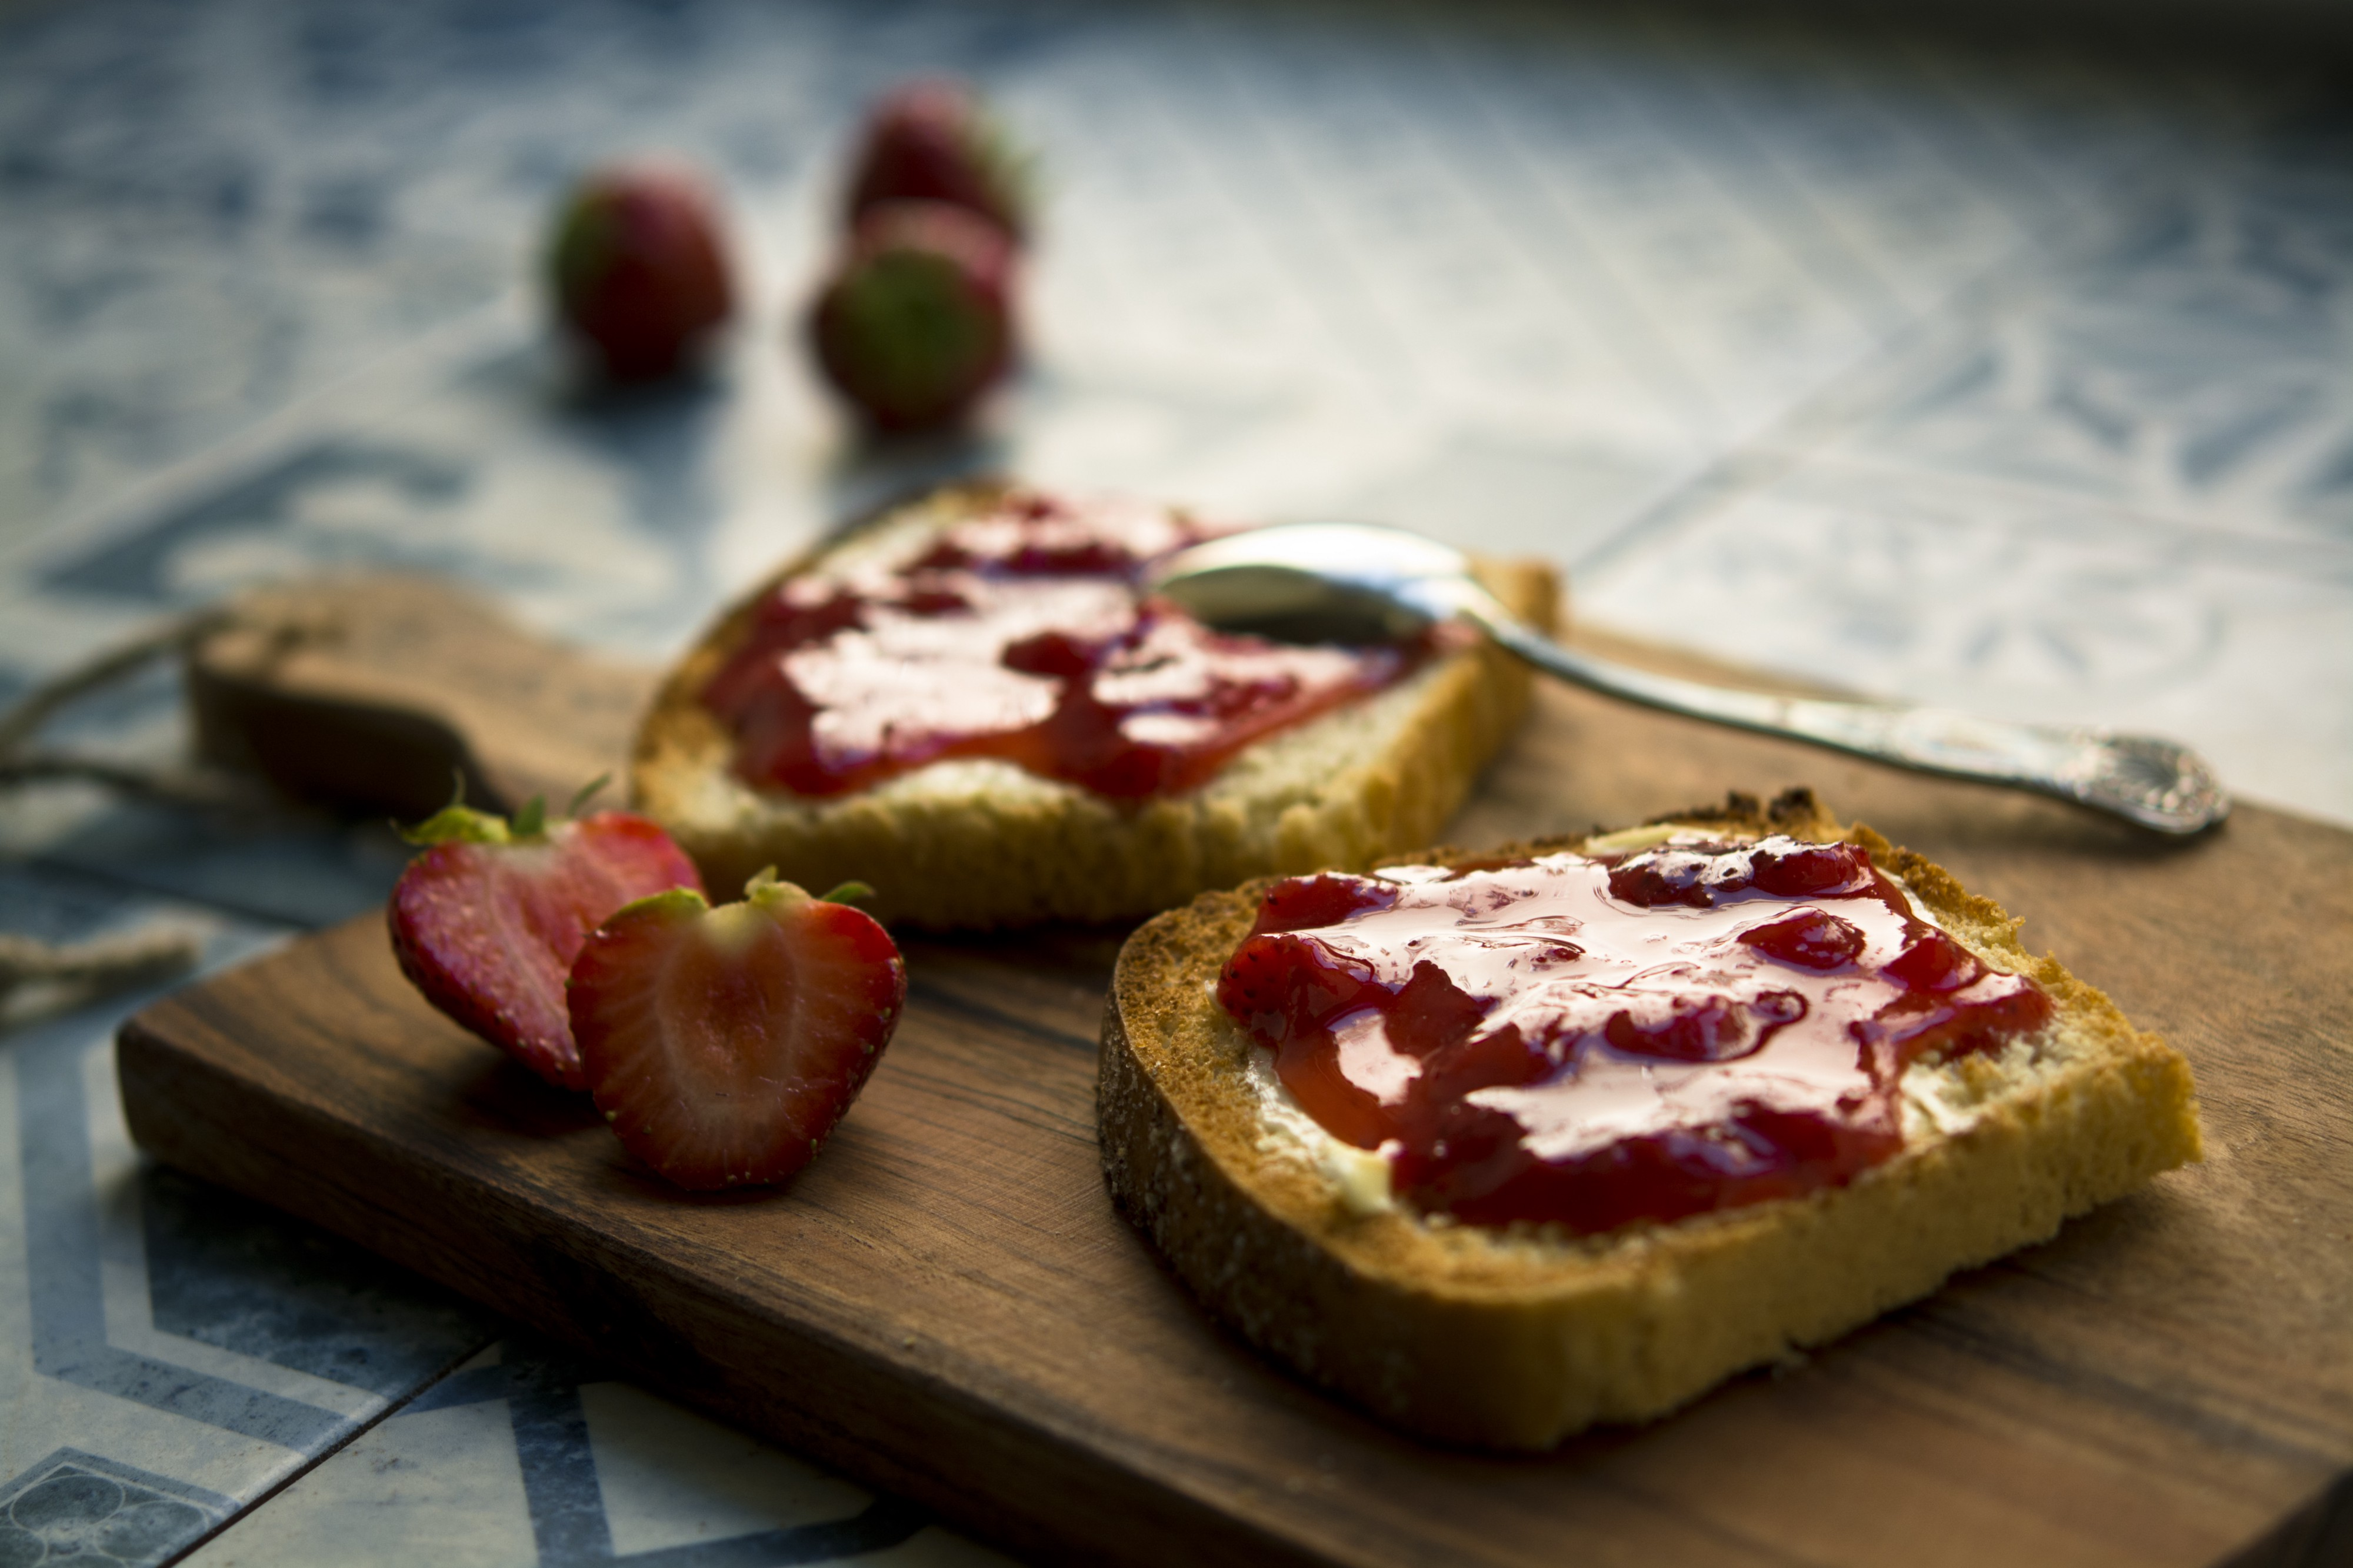 toasted bread with strawberry jam